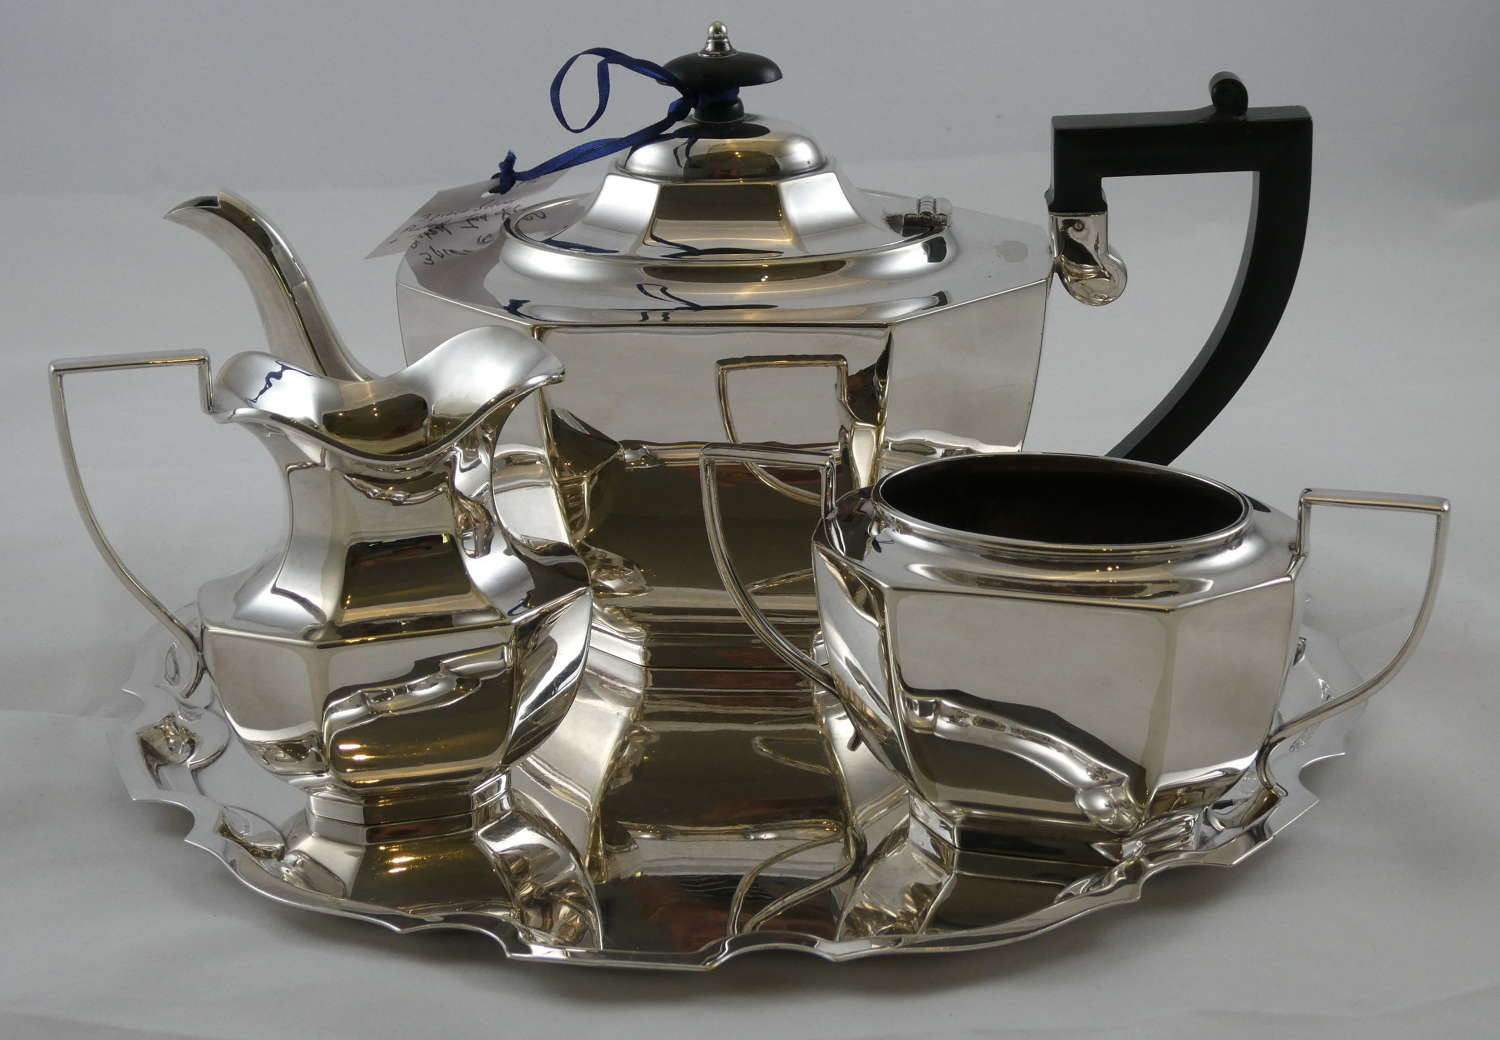 Three Piece Tea Set on Tray